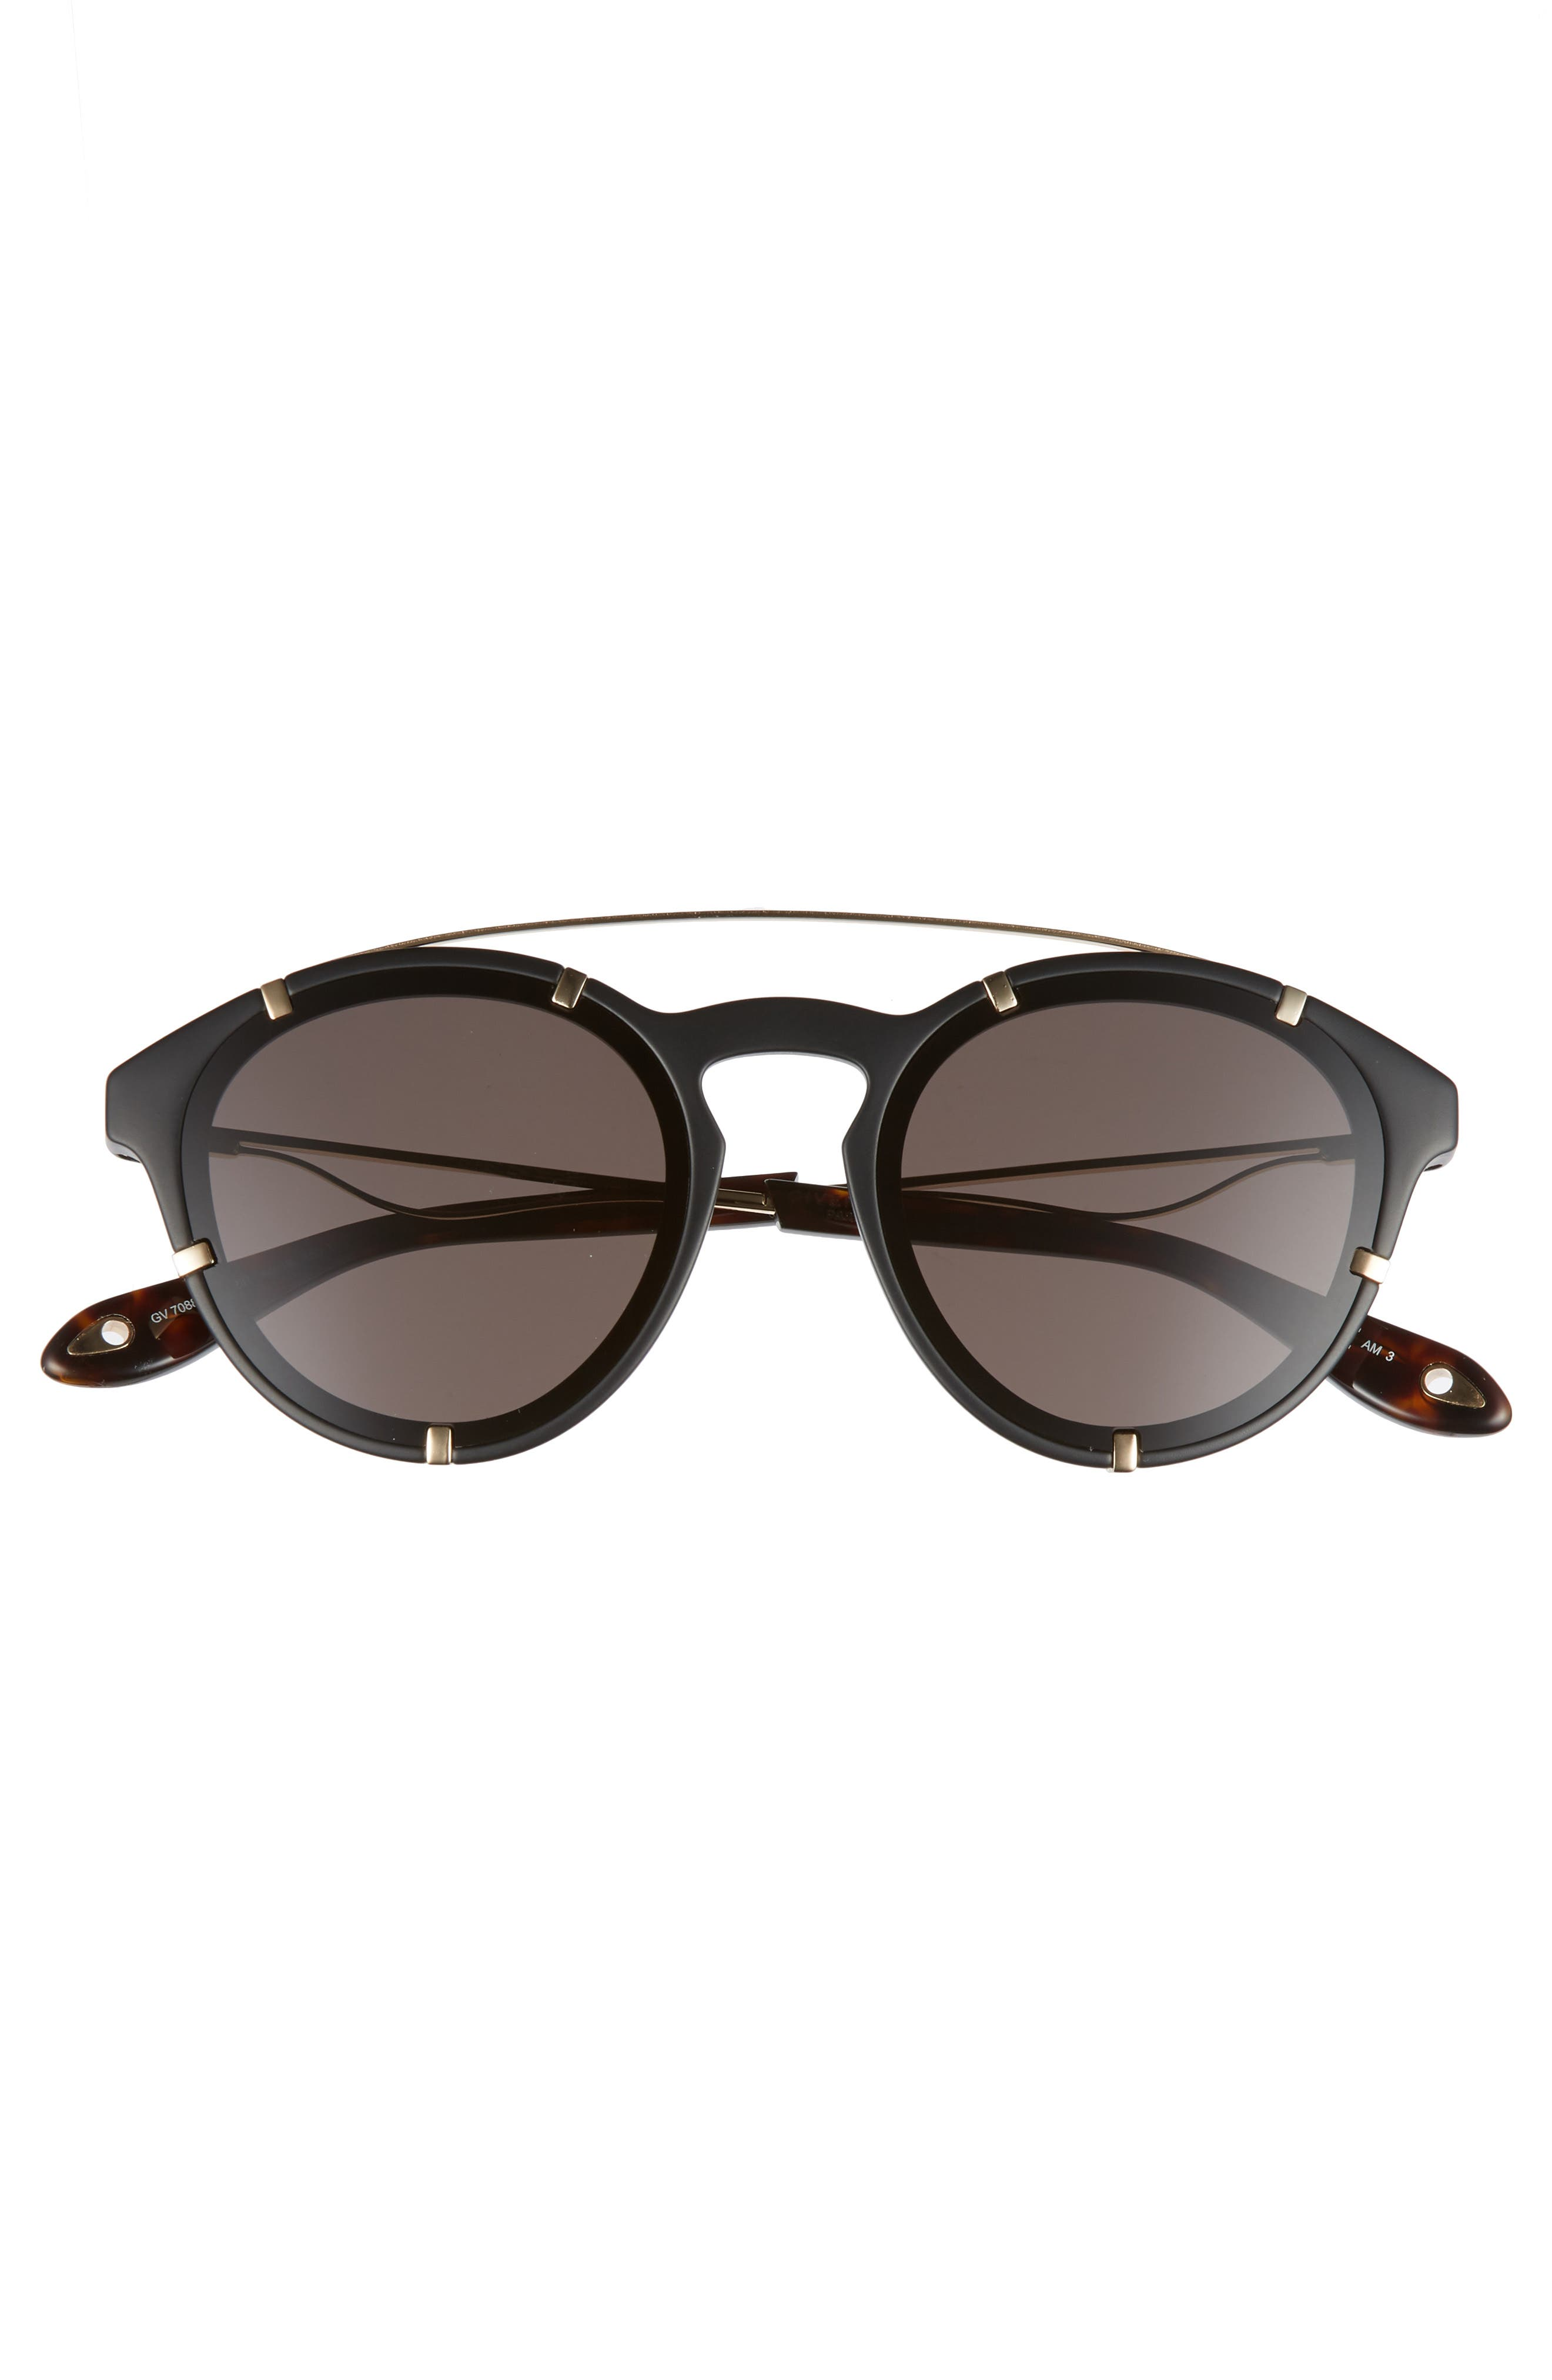 GIVENCHY,                             54mm Round Polarized Sunglasses,                             Alternate thumbnail 3, color,                             001